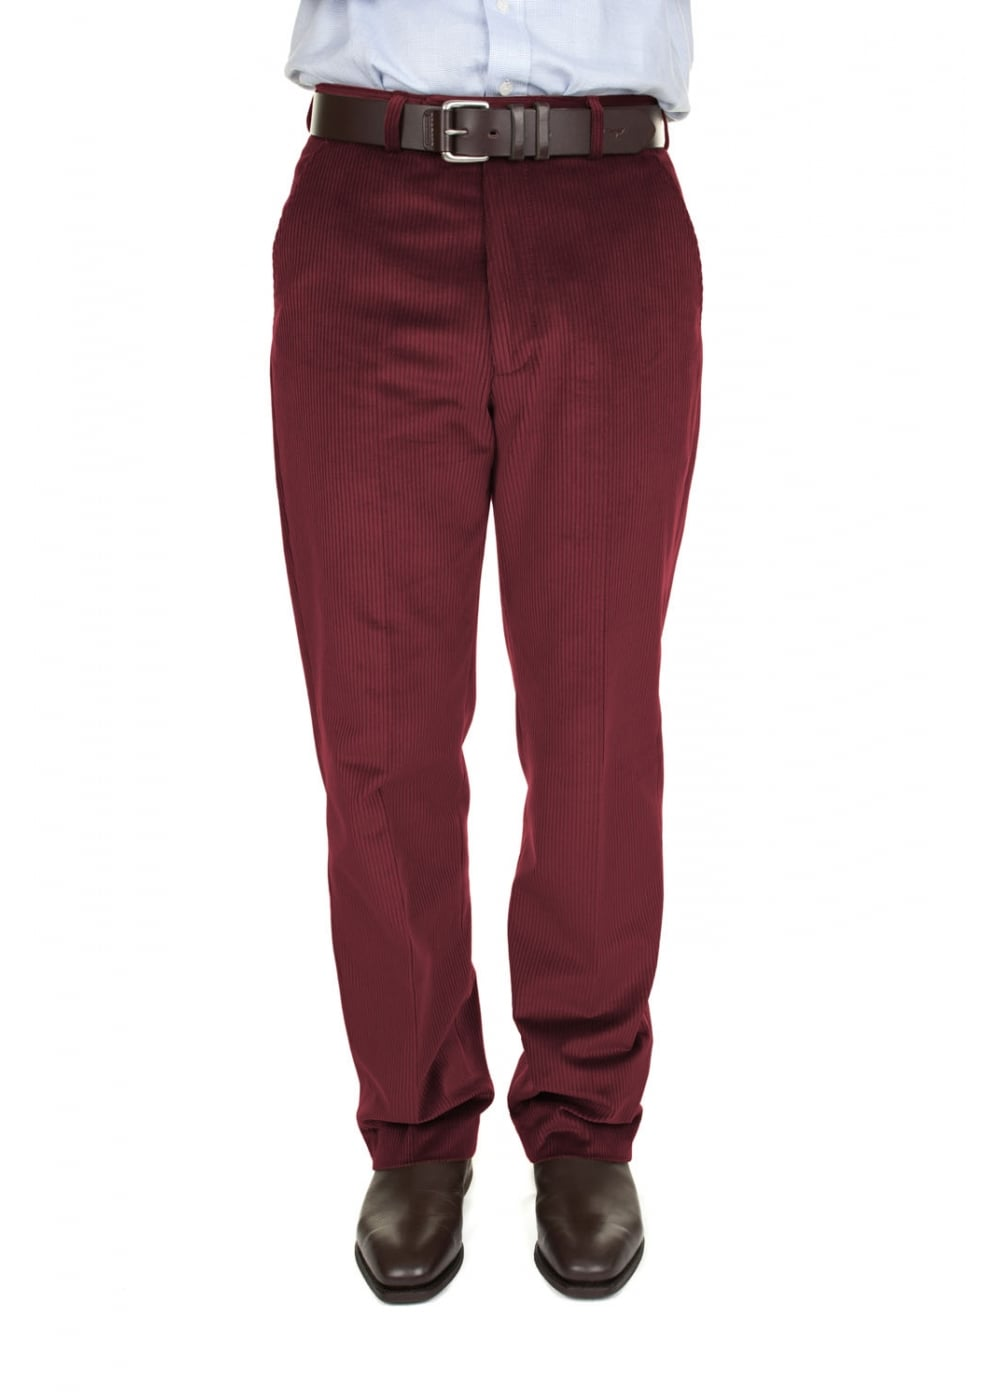 934c4d23997 Gurteen Cologne Stretch Corduroy Trousers - Mens from A Hume UK